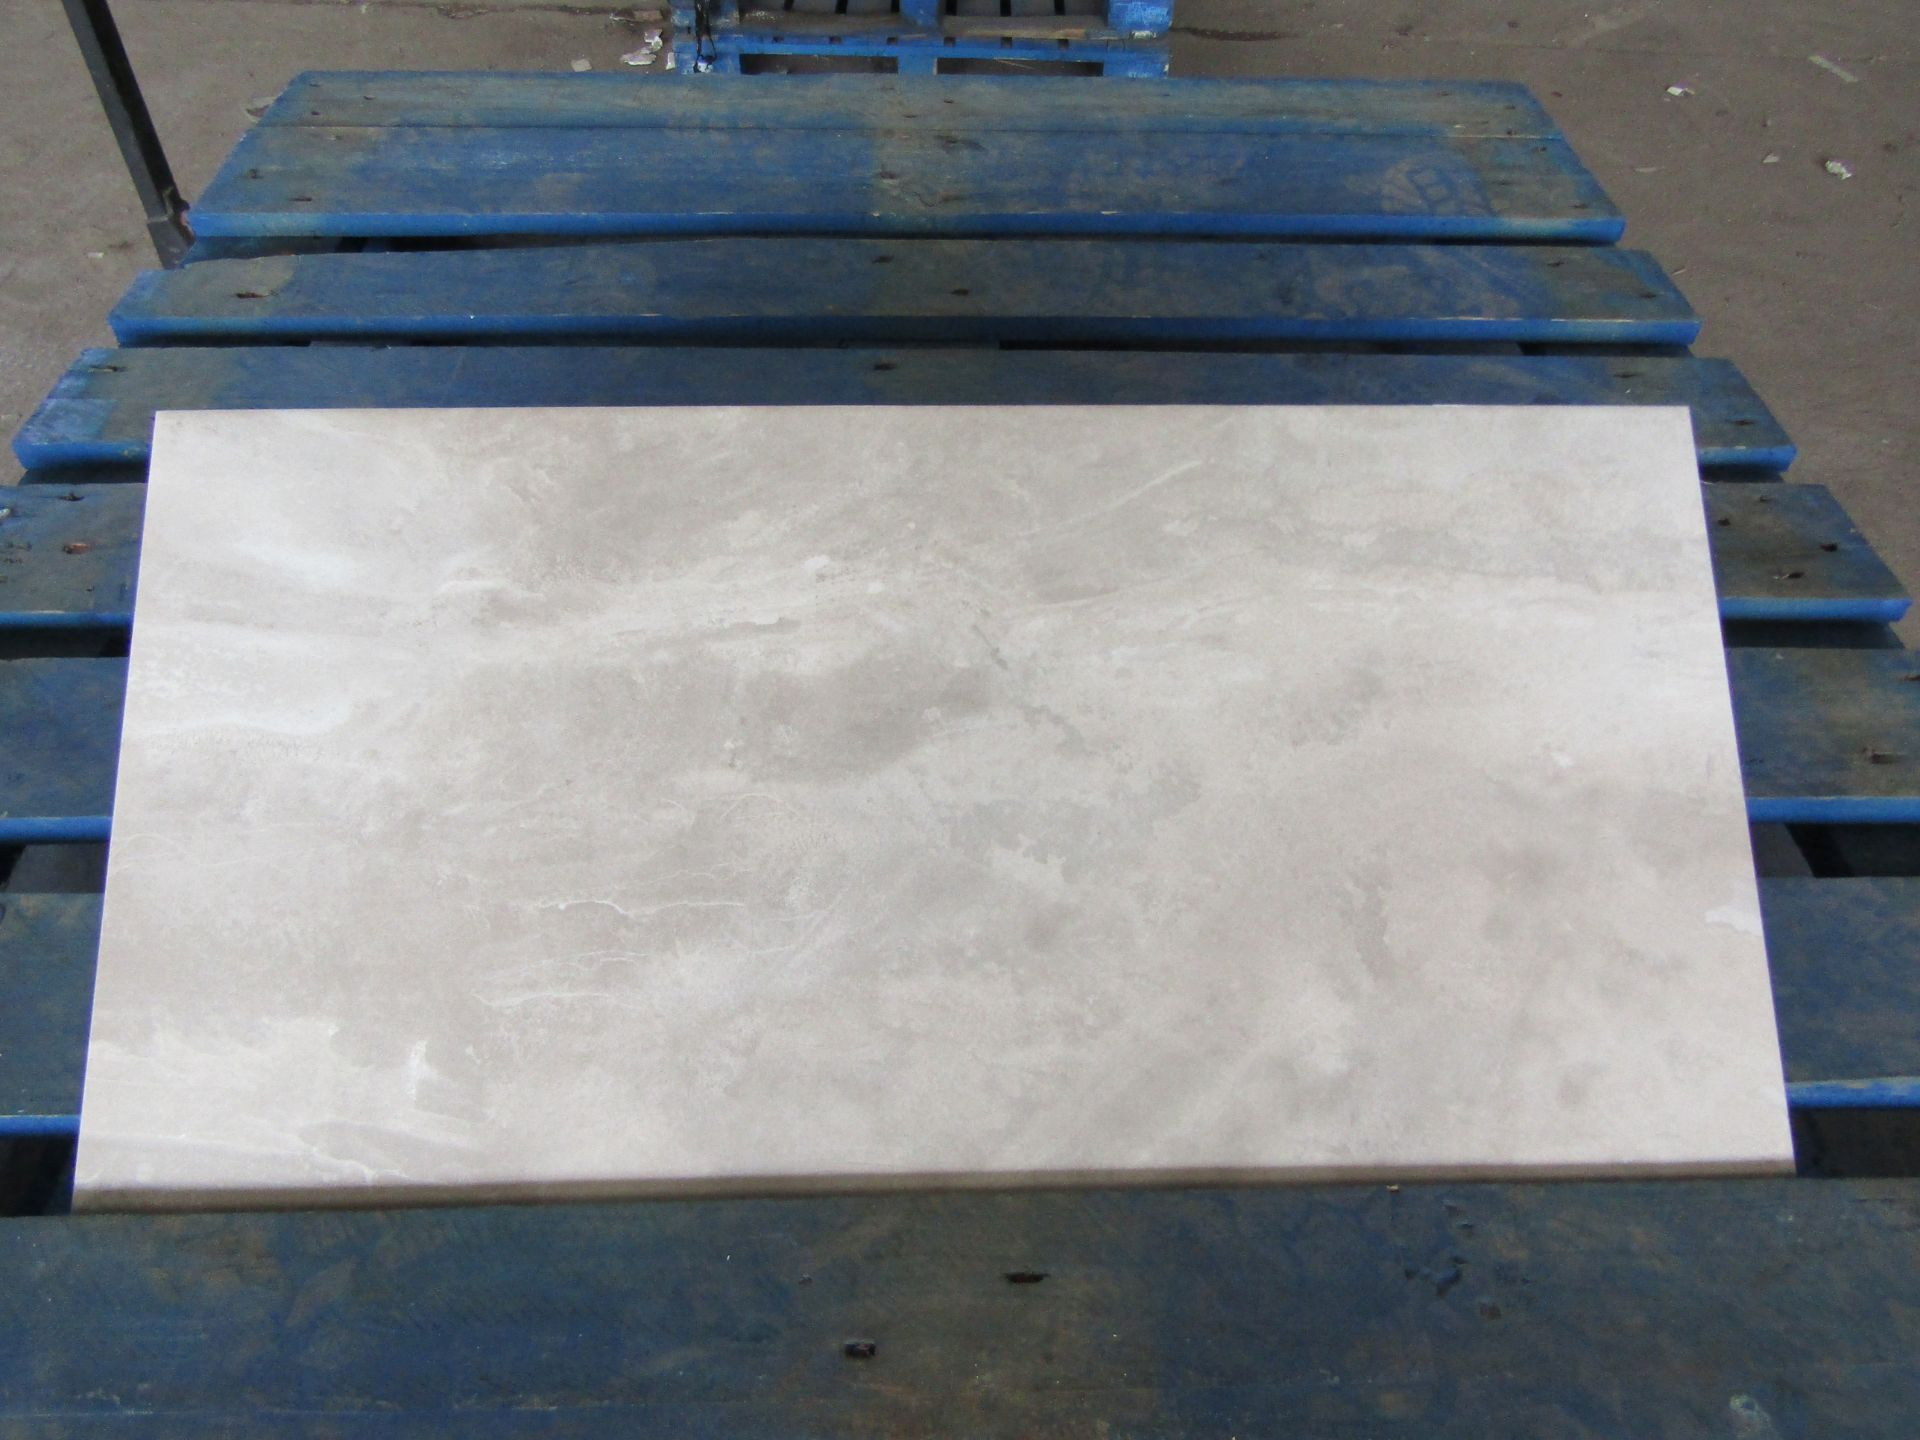 Pallet of 40x Packs of 5 Stoneware Flint Silk 300x600 wall and Floor Tiles By Johnsons, New, the